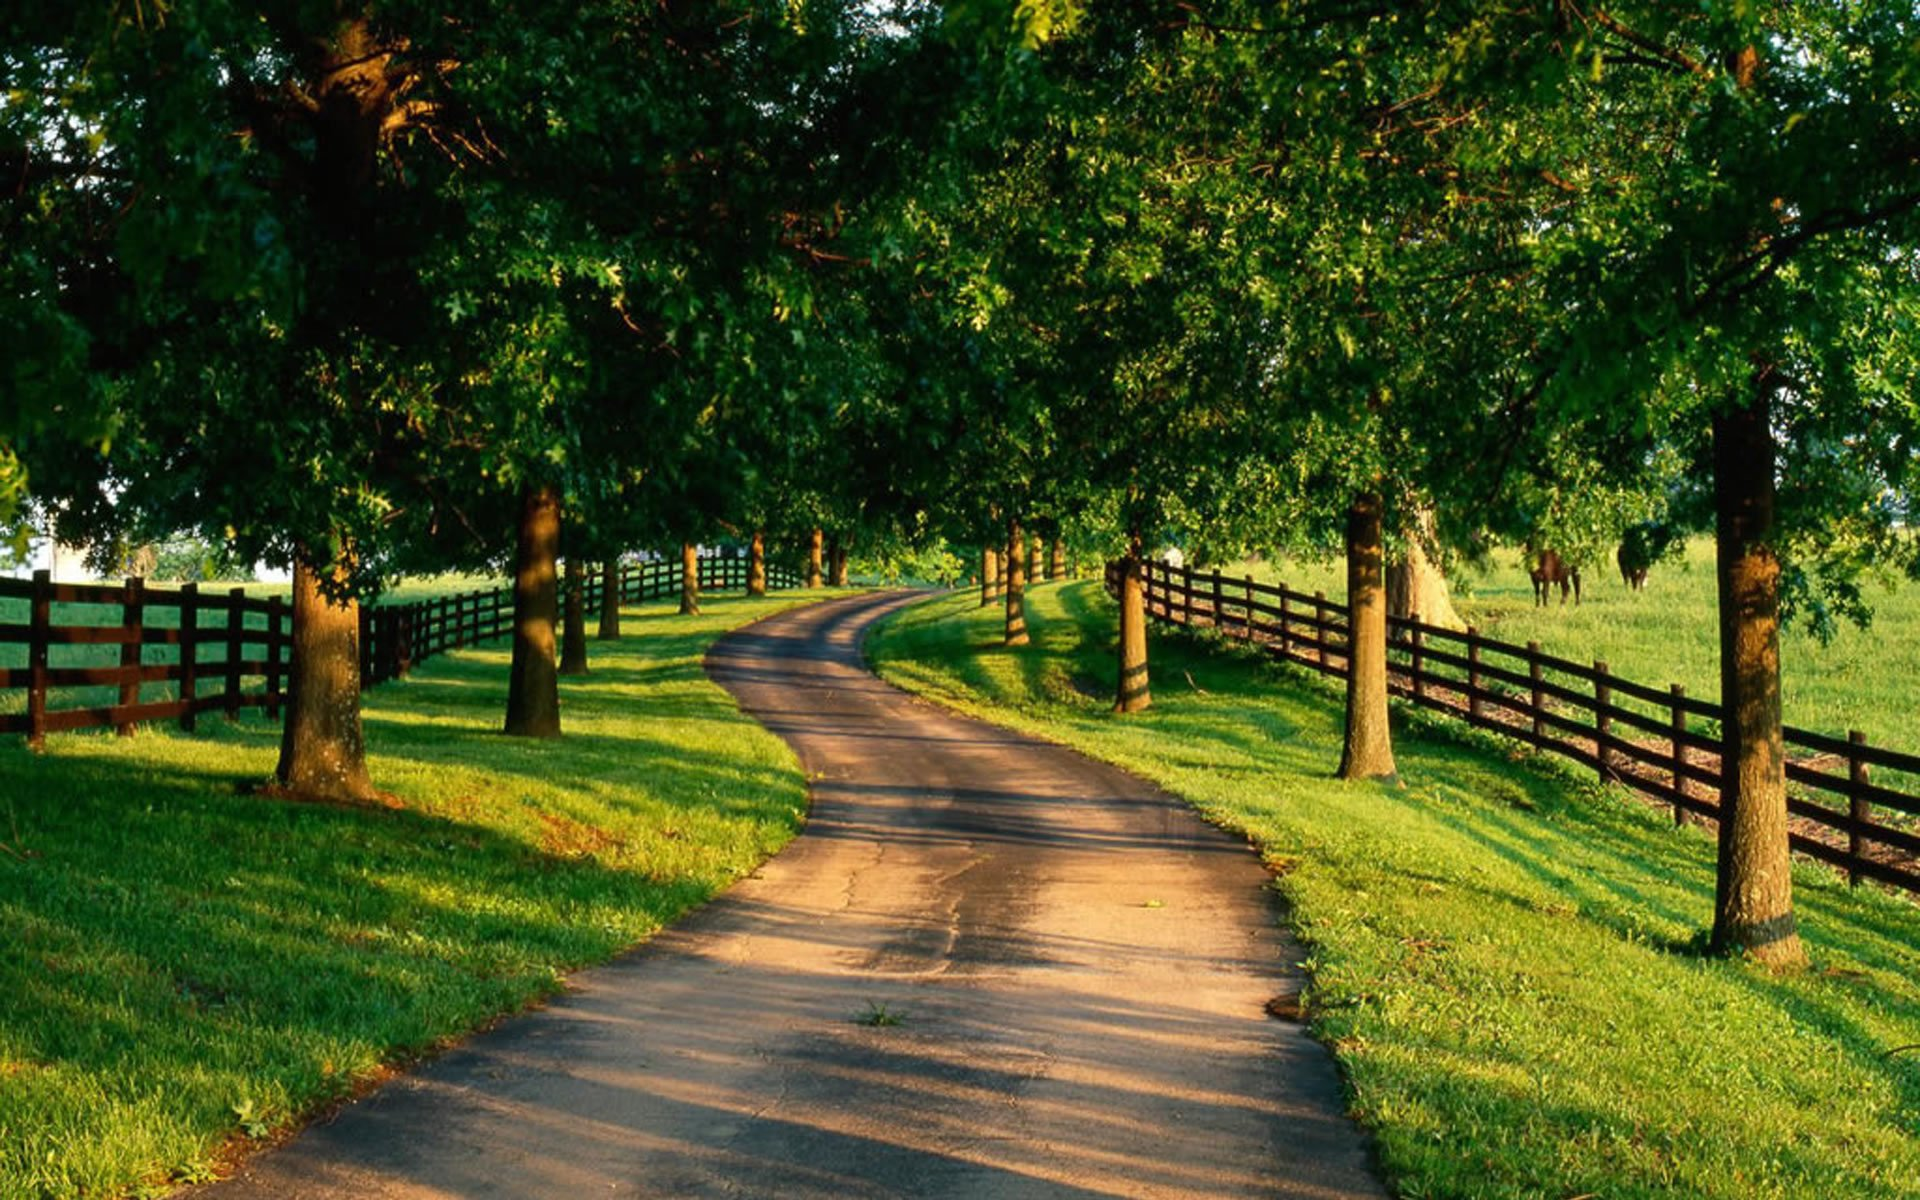 Road HD Wallpapers Background Images Wallpaper